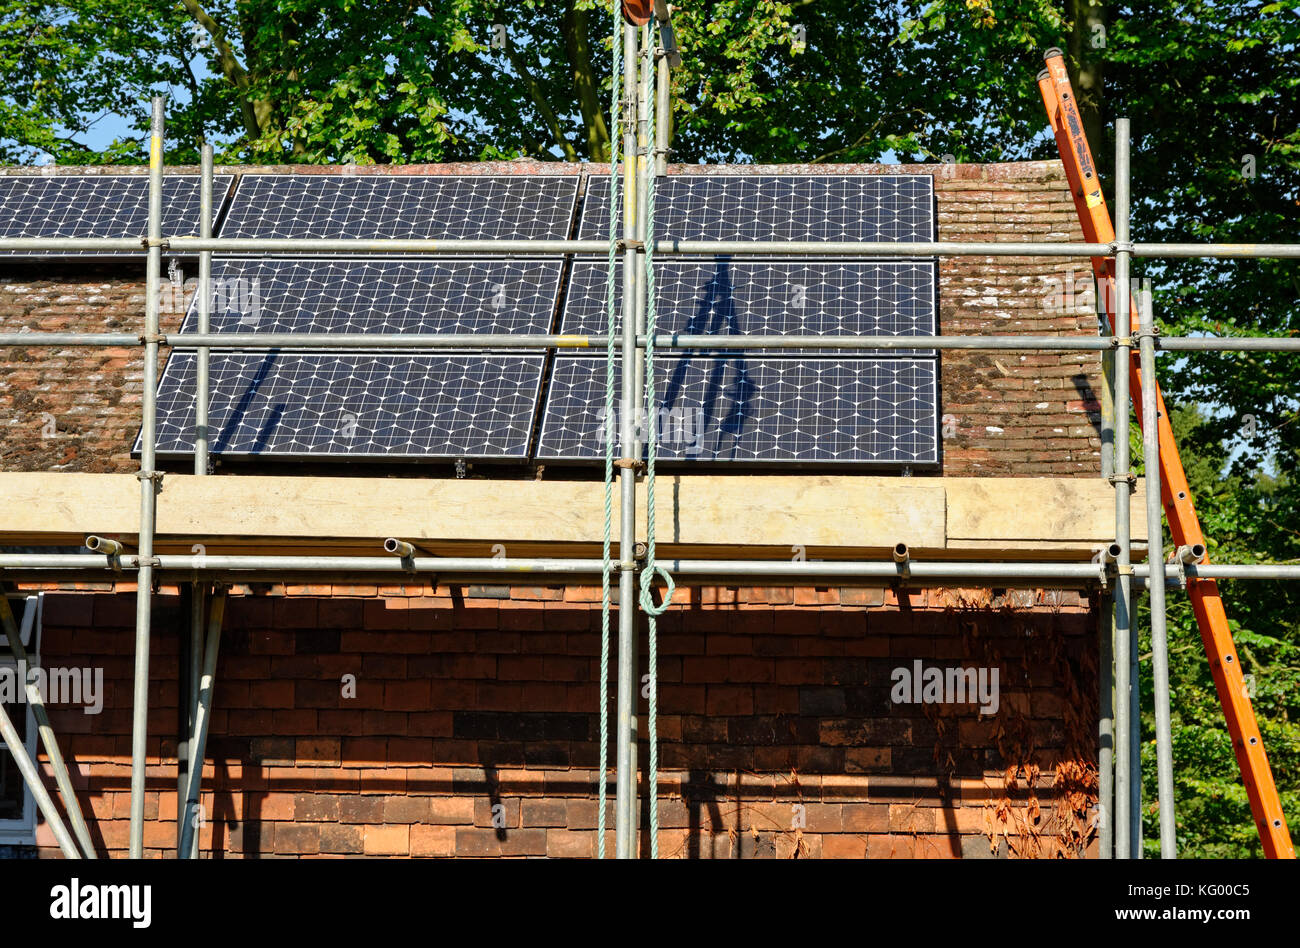 SOLAR POWER INSTALLATION DETACHED HOUSE ENGLAND UK - Stock Image